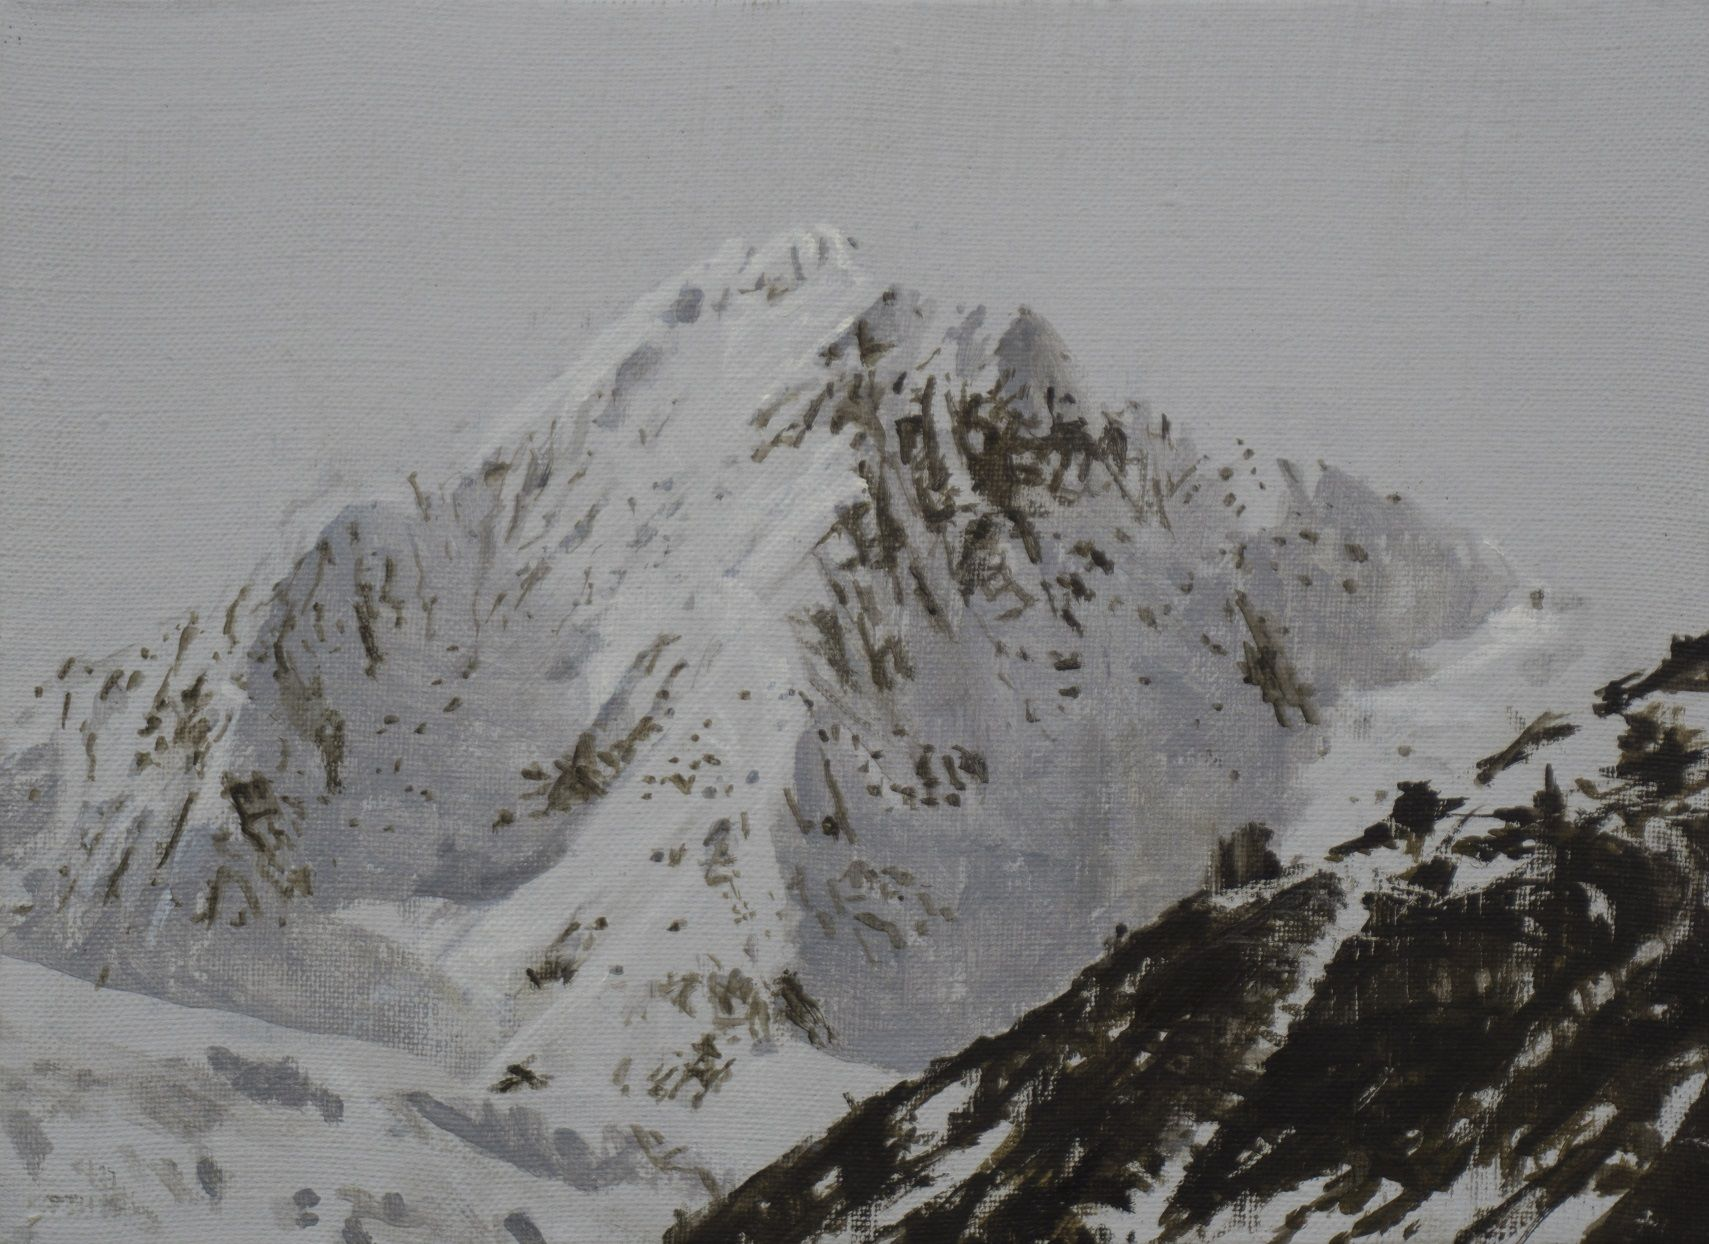 Benasque Study 1, Snow collection,Calo  Carratalá,Contemporary painting